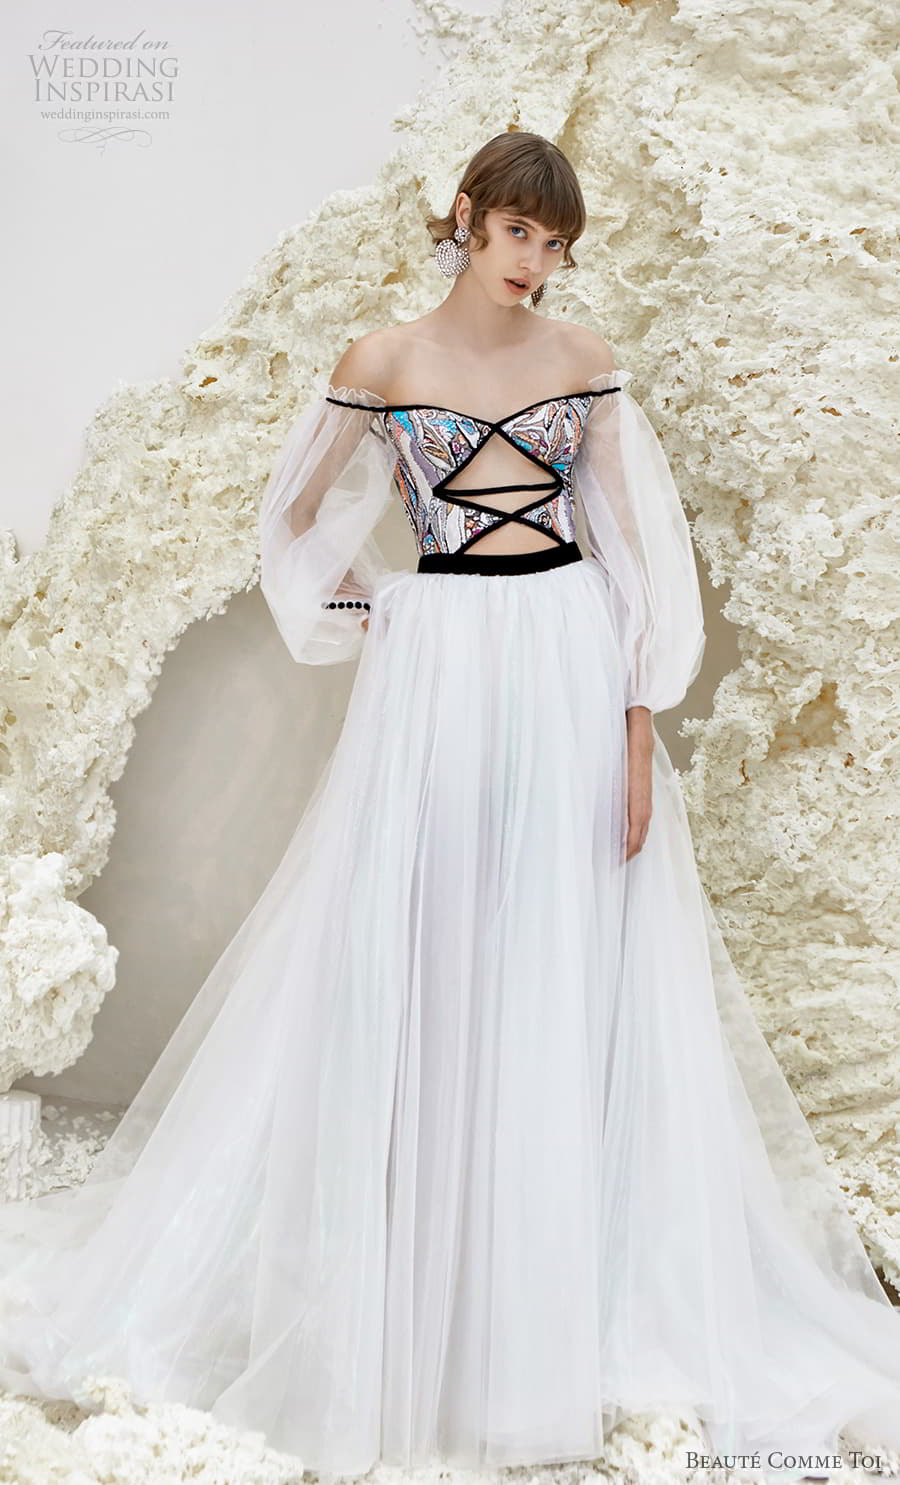 beaute comme toi spring 2022 bridal sheer bishop sleeves off shoulder semi sweetheart neckline cutout bodice a line ball gown wedding dress (isla) mv